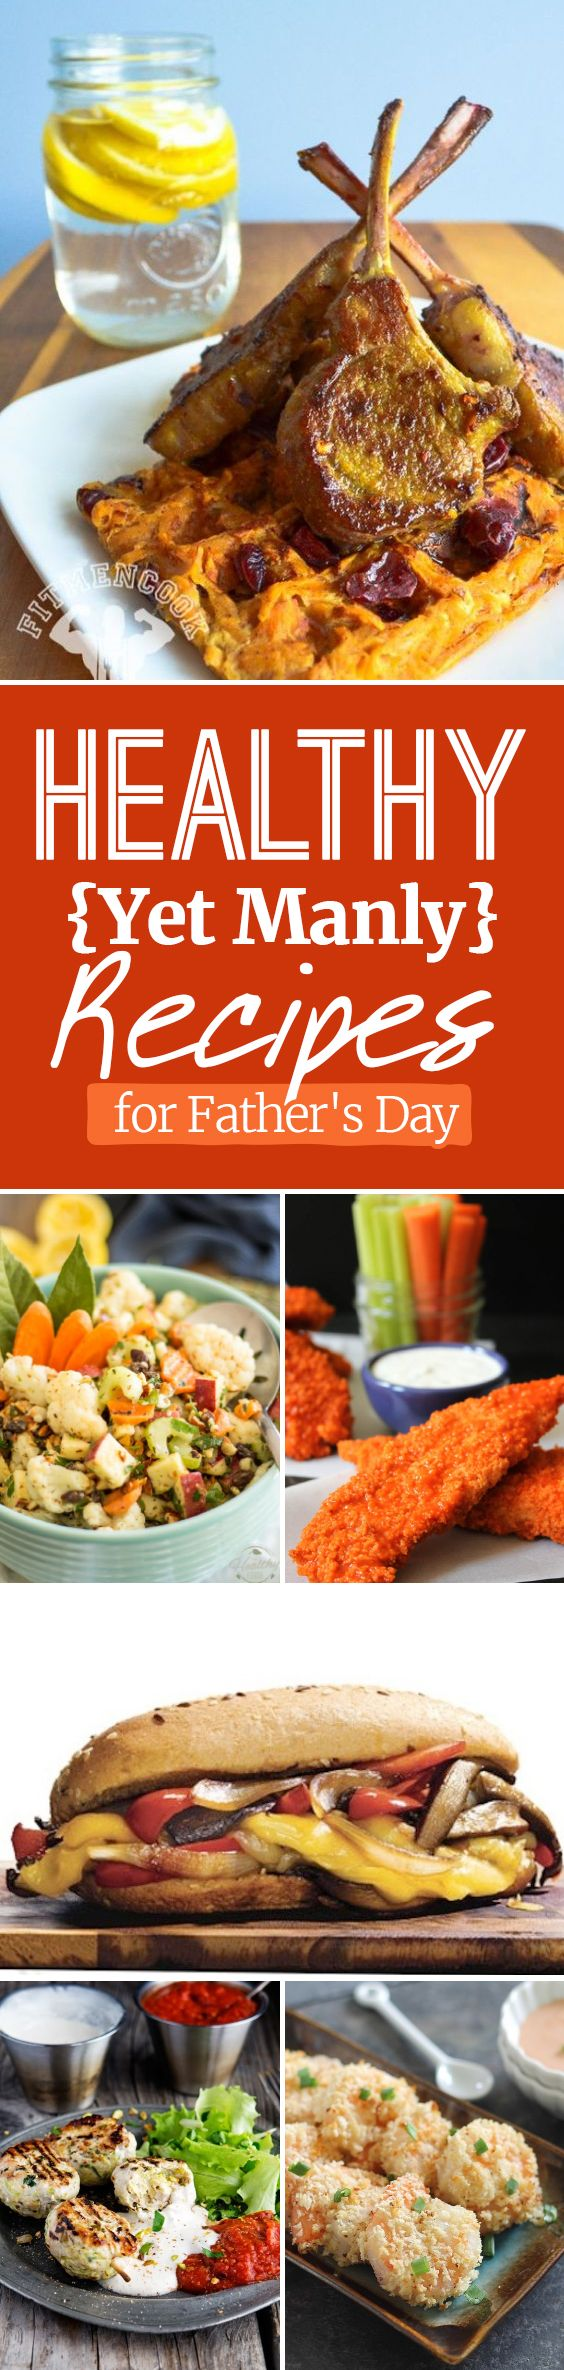 Healthy Yet Manly Recipes for Father's Day - Paleo to Vegan options for a great meal everyone will love